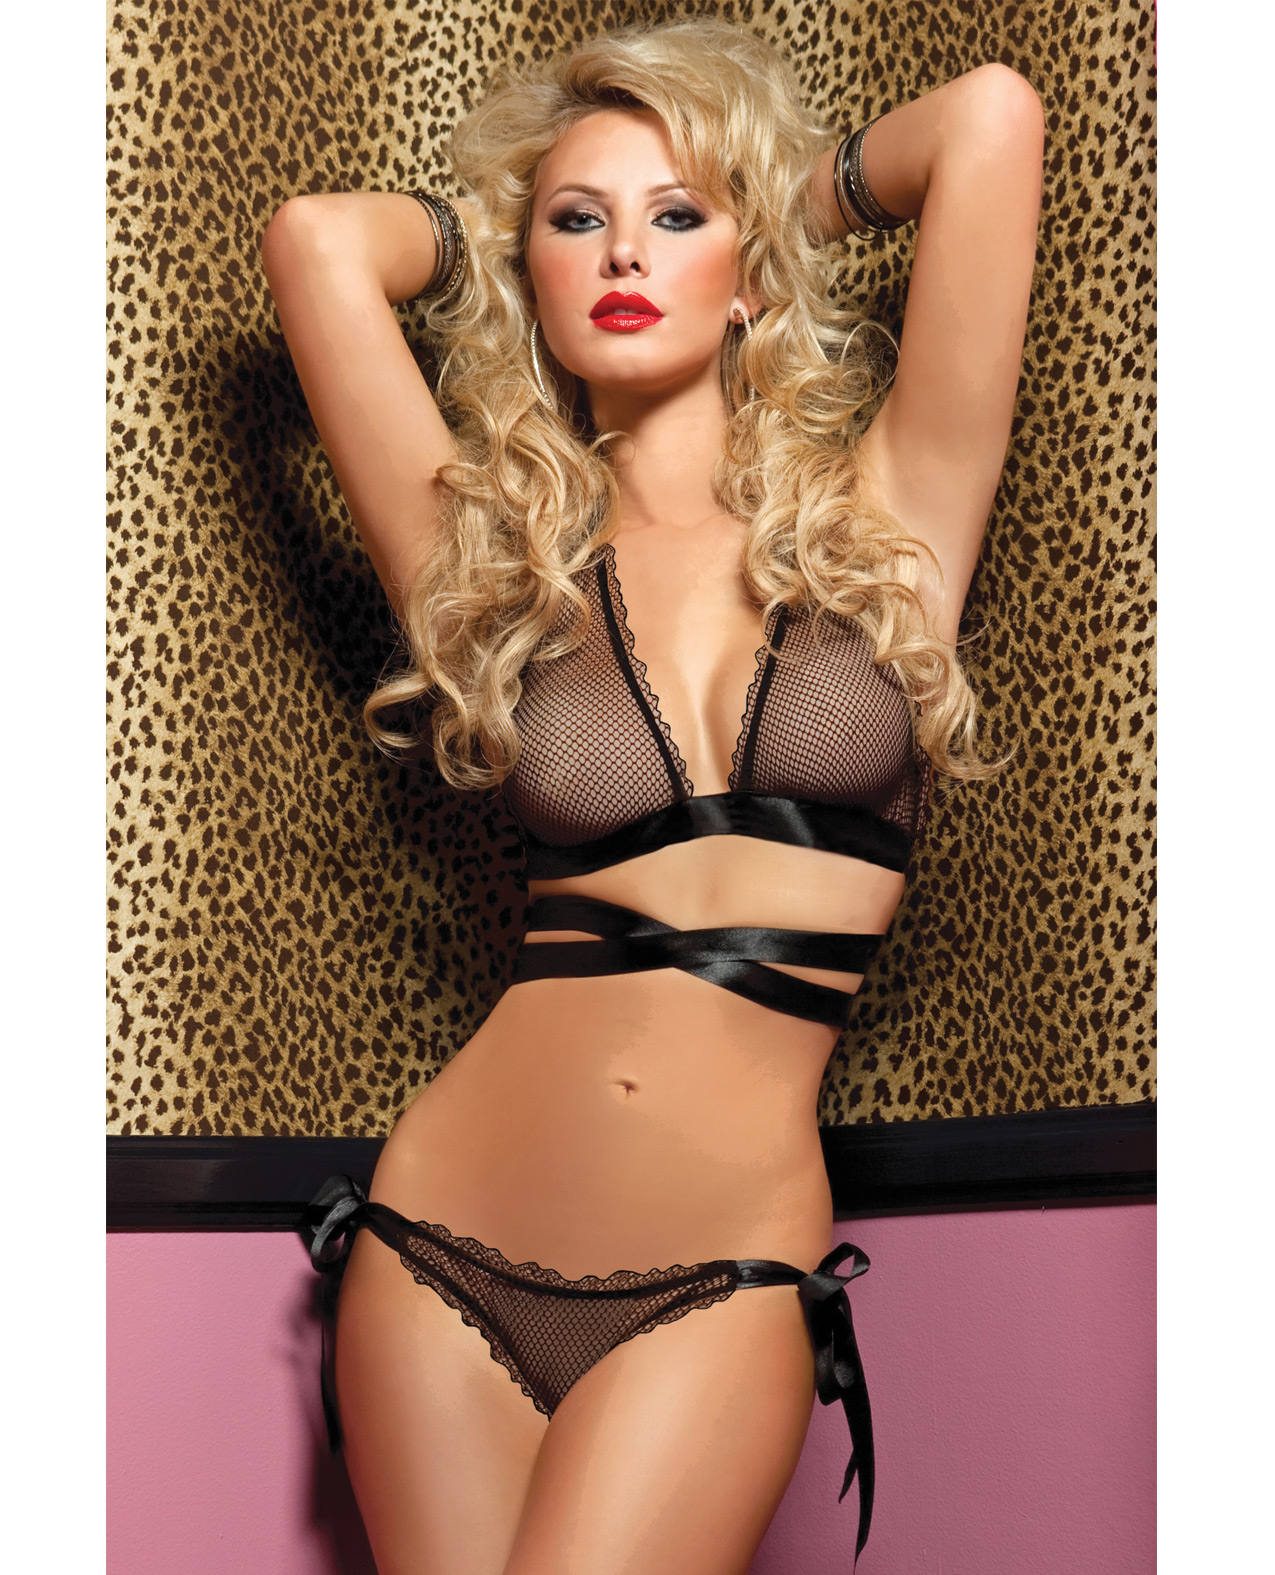 Women's Fishnet Cross Front and Back Bra, and Side Tie Panty Black - OS ED-STM9585-BK-OS